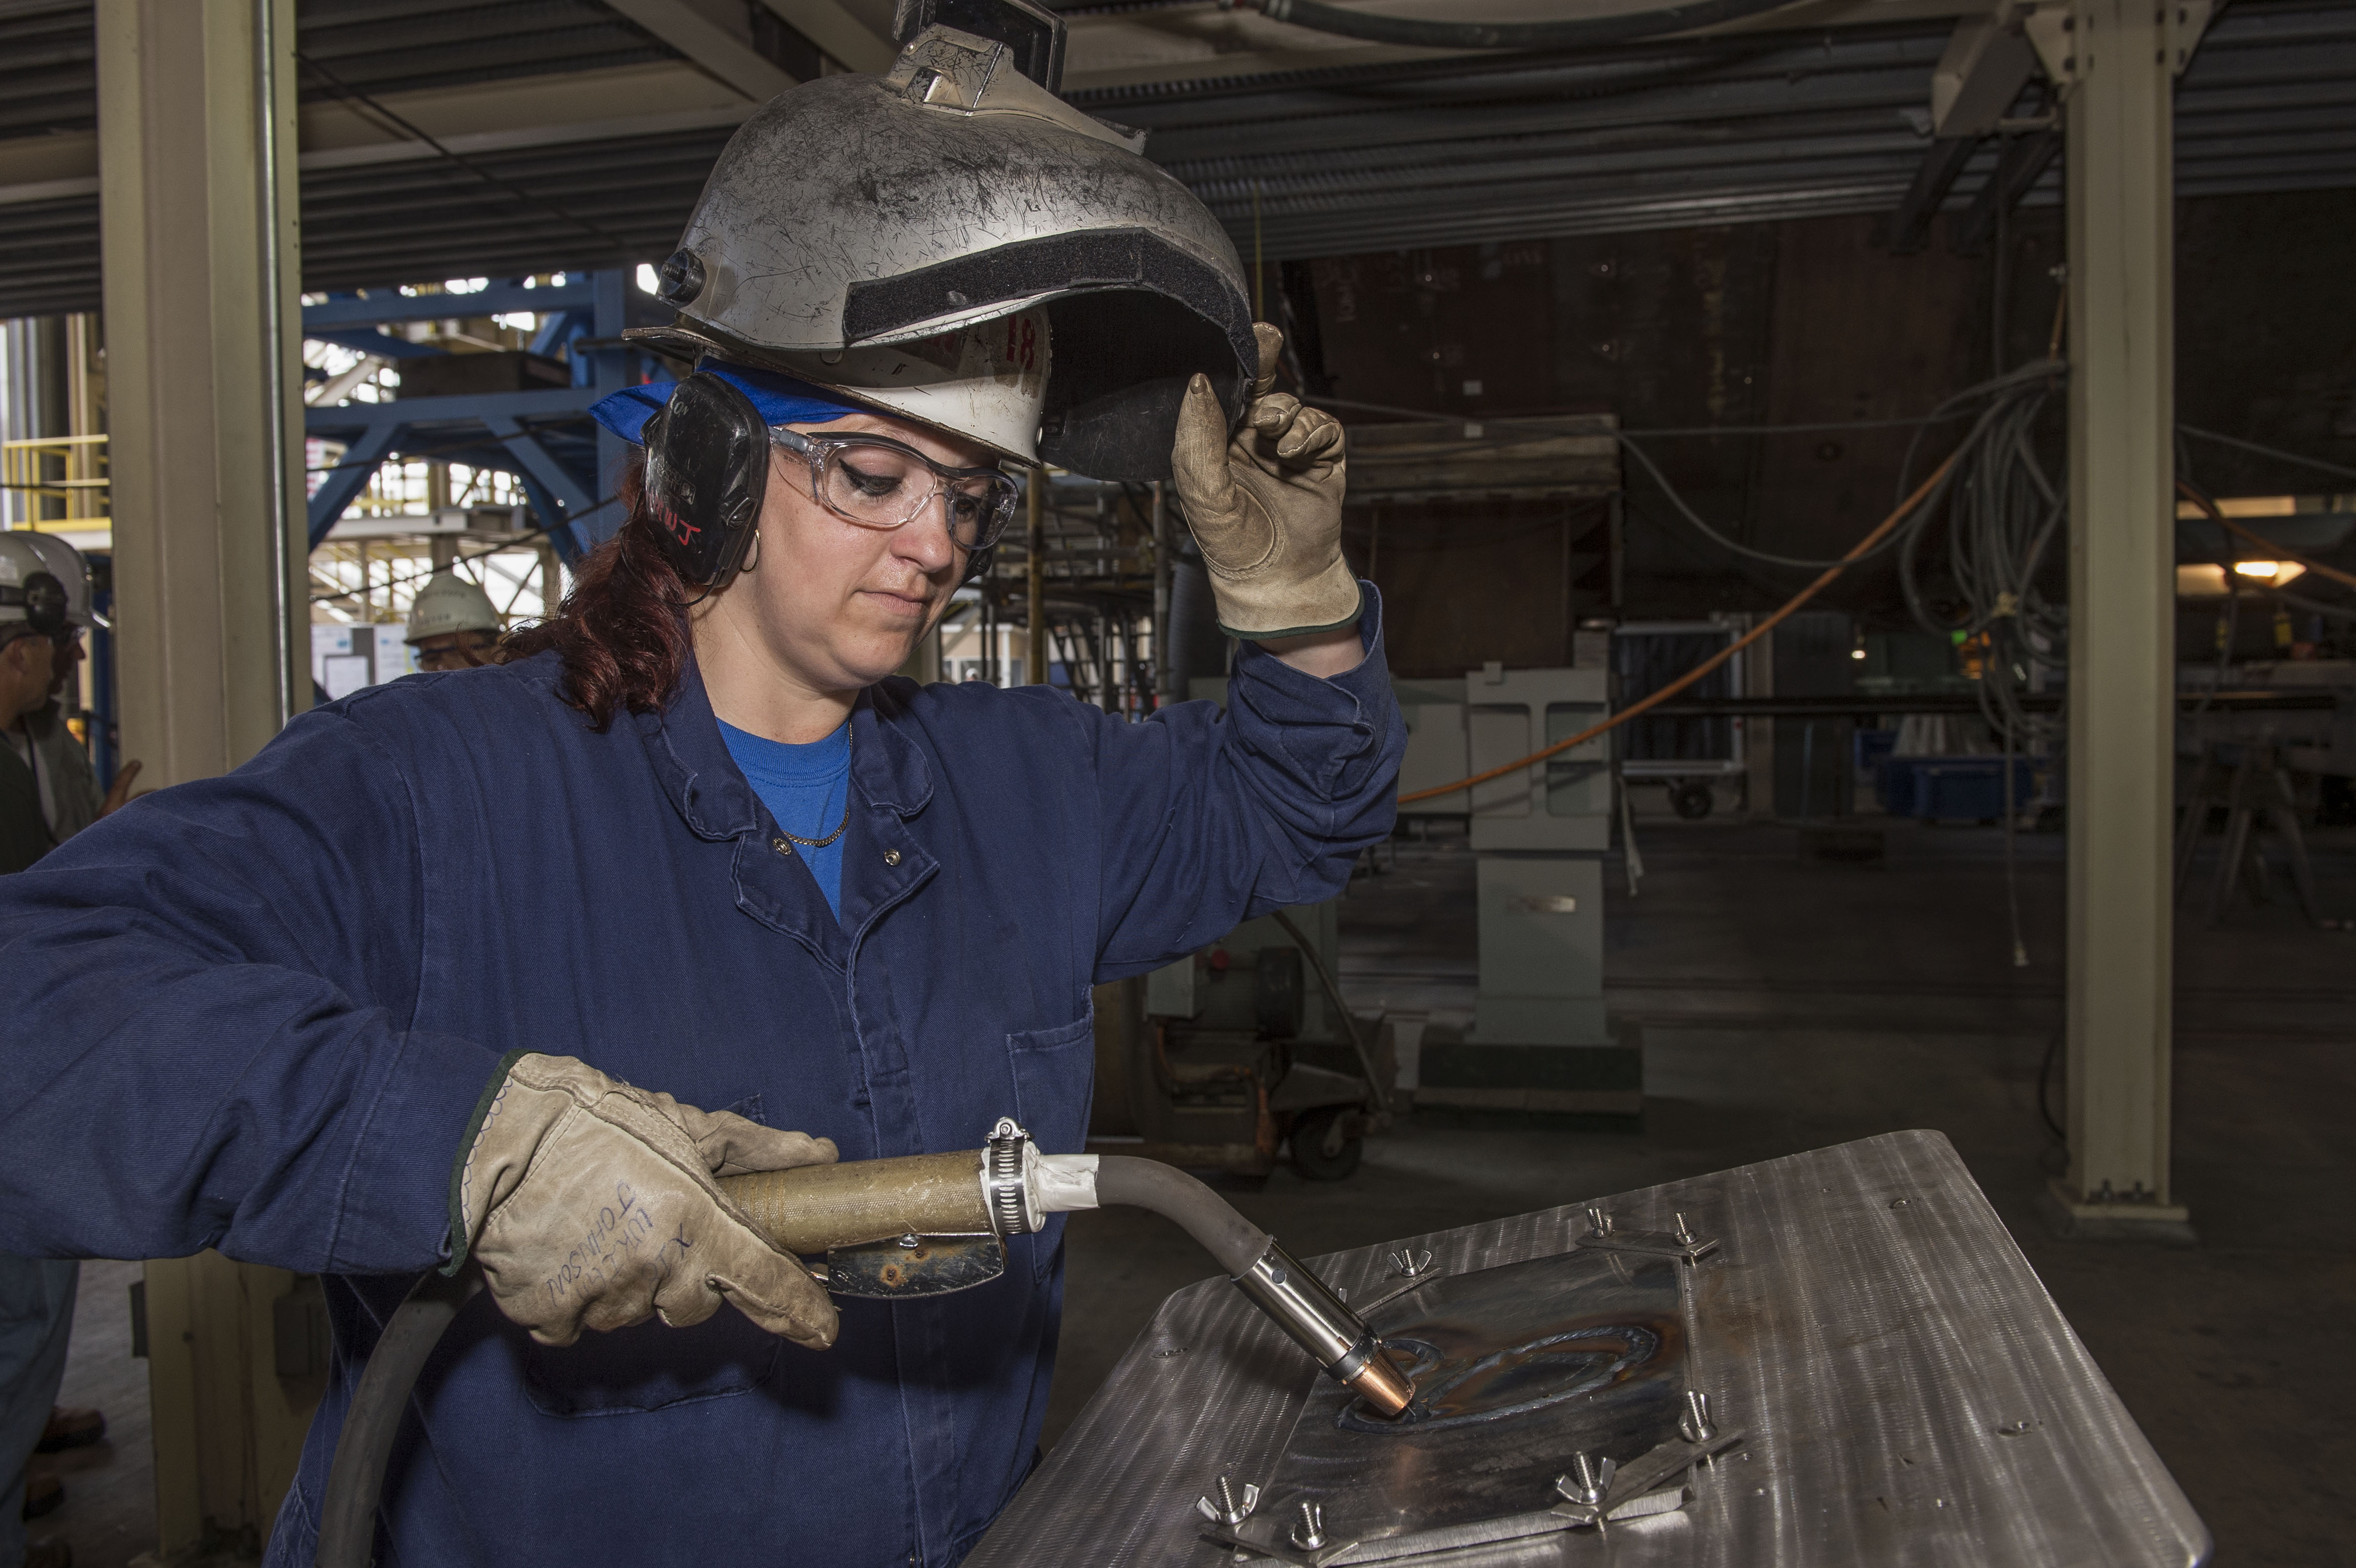 Heather Johnson welder for Indiana Keel Laying. Heather is the first female welder to weld the initals of a ships's sponsor on a Virginia-class submarine.